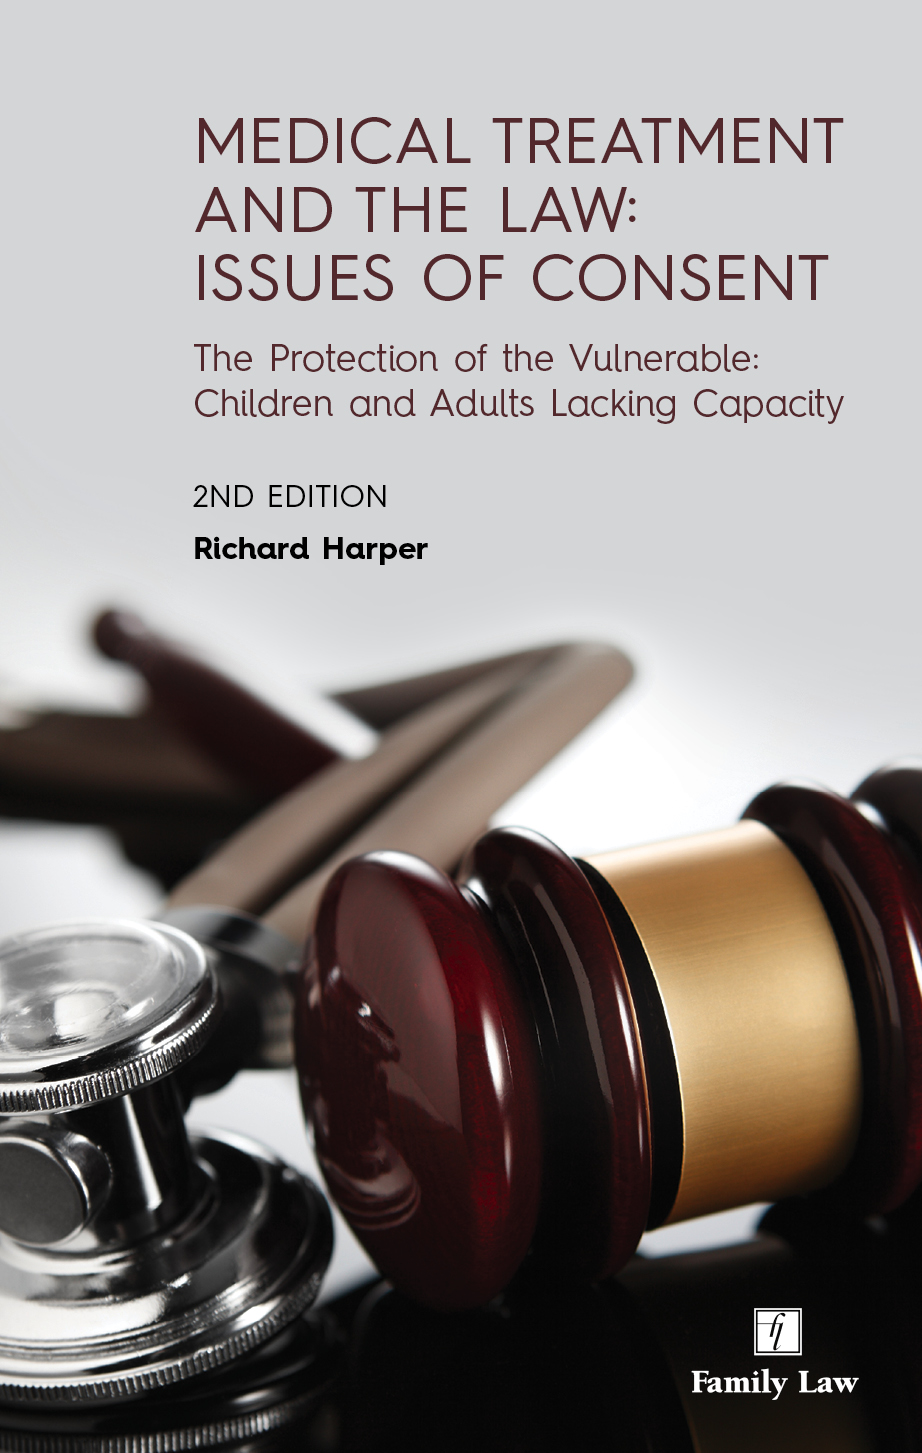 Medical Treatment and the Law: Issues of Consent